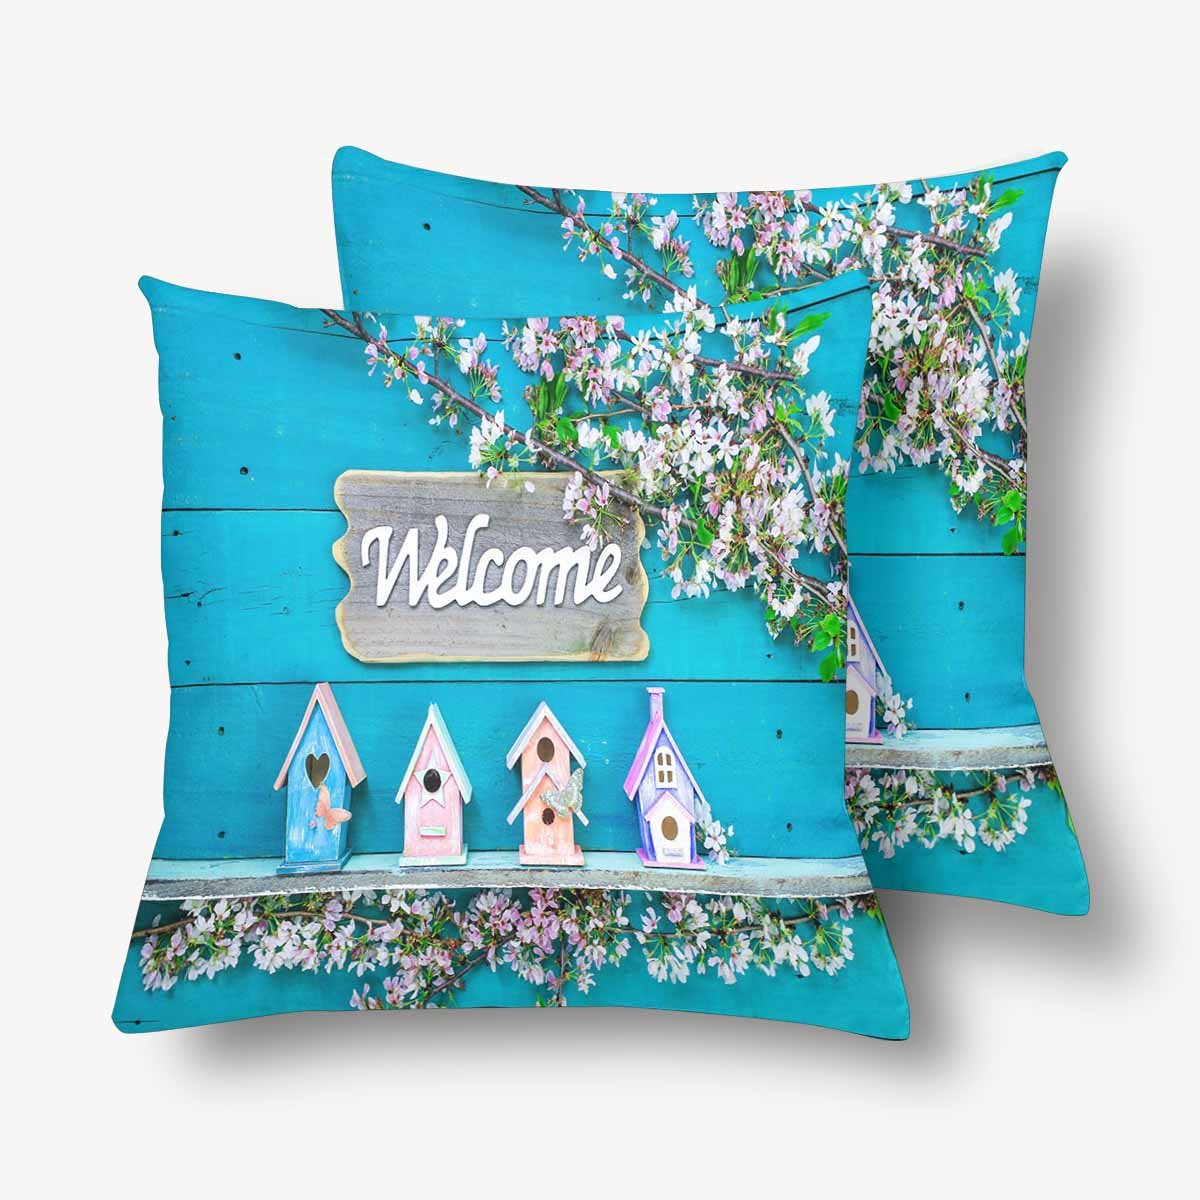 InterestPrint Welcome Sign Birdhouse Butterfly Spring Tree Flower Blue Wood Pillowcase Throw Pillow Covers 18x18 Set of 2, Pillow Sham Cases Protector for Home Couch Sofa Bedding Decorative